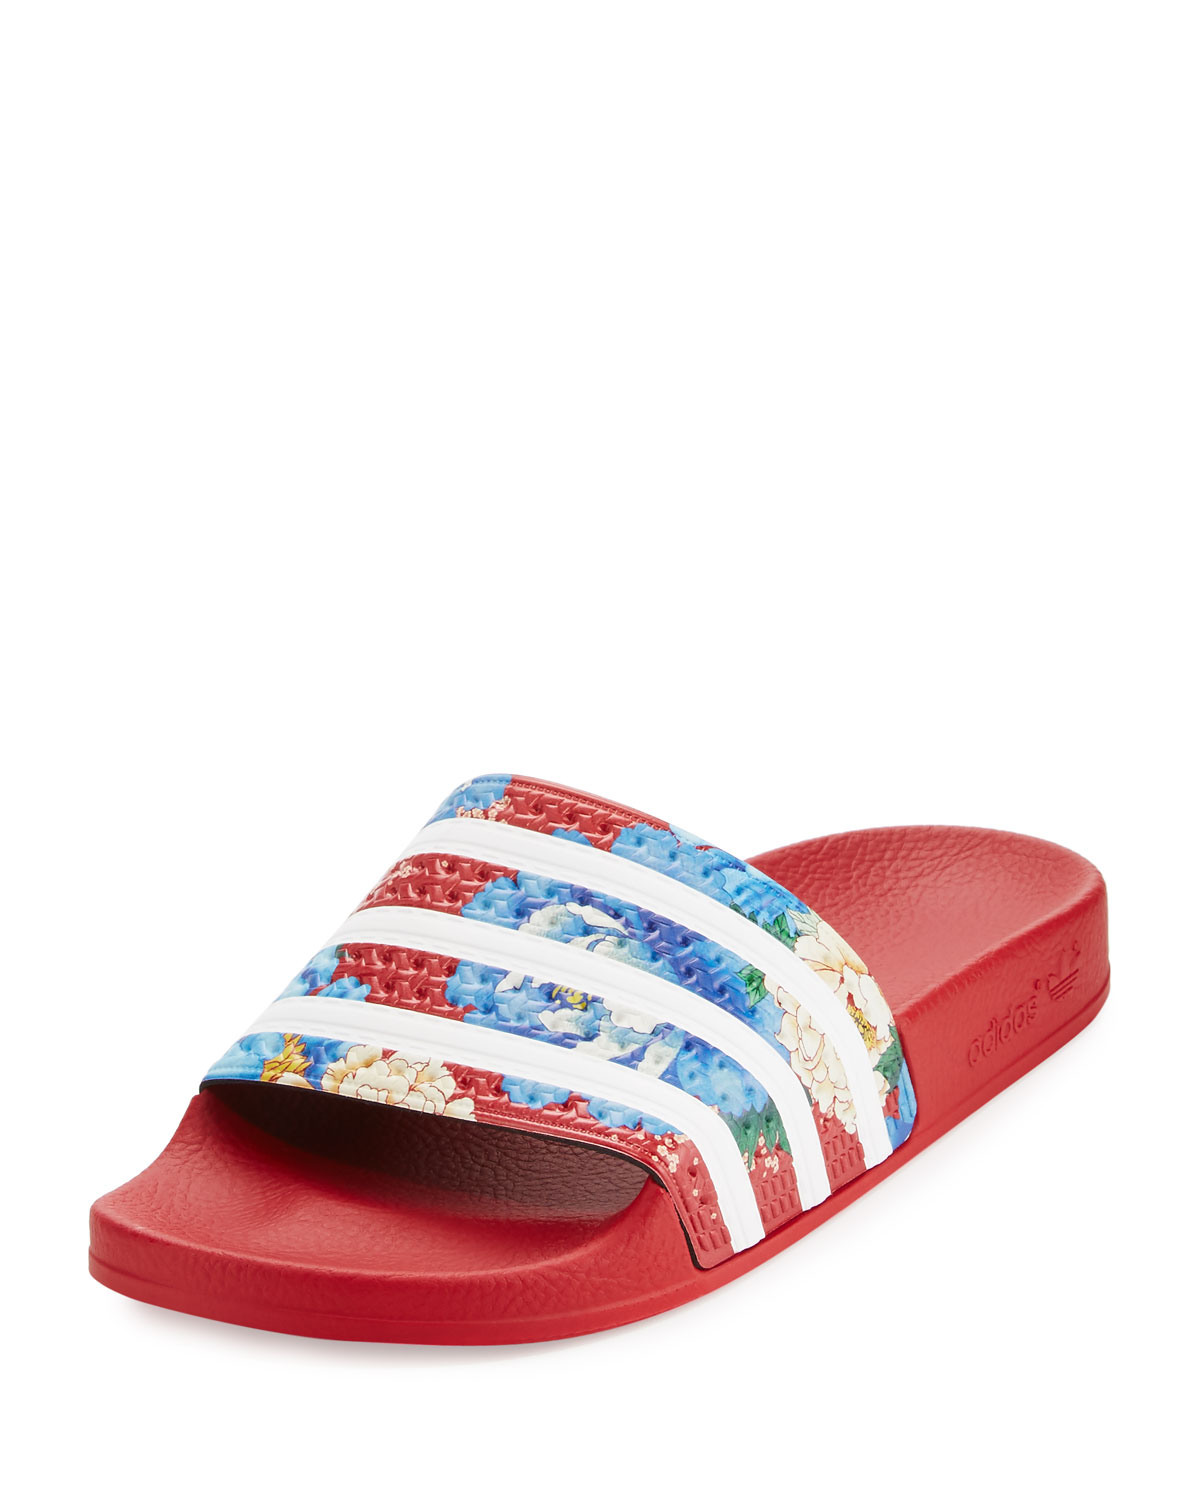 new products 0a7b5 b675e ... (288193) Adilette Slides - Red White   MLTD. red adidas slides